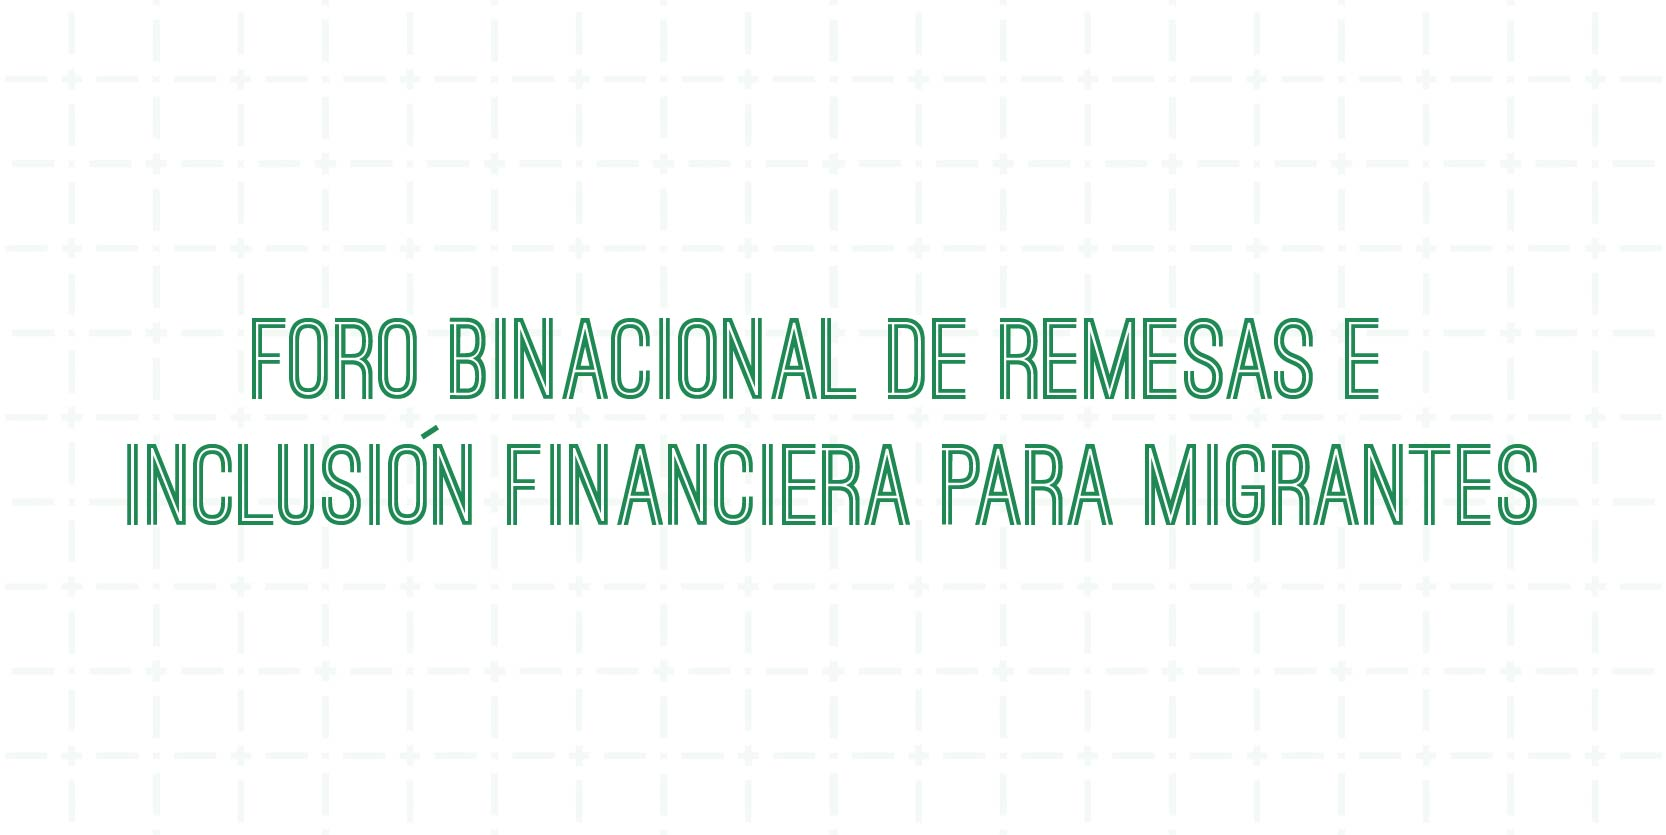 FORO BINACIONAL DE REMESAS E INCLUSION FINANCIERA